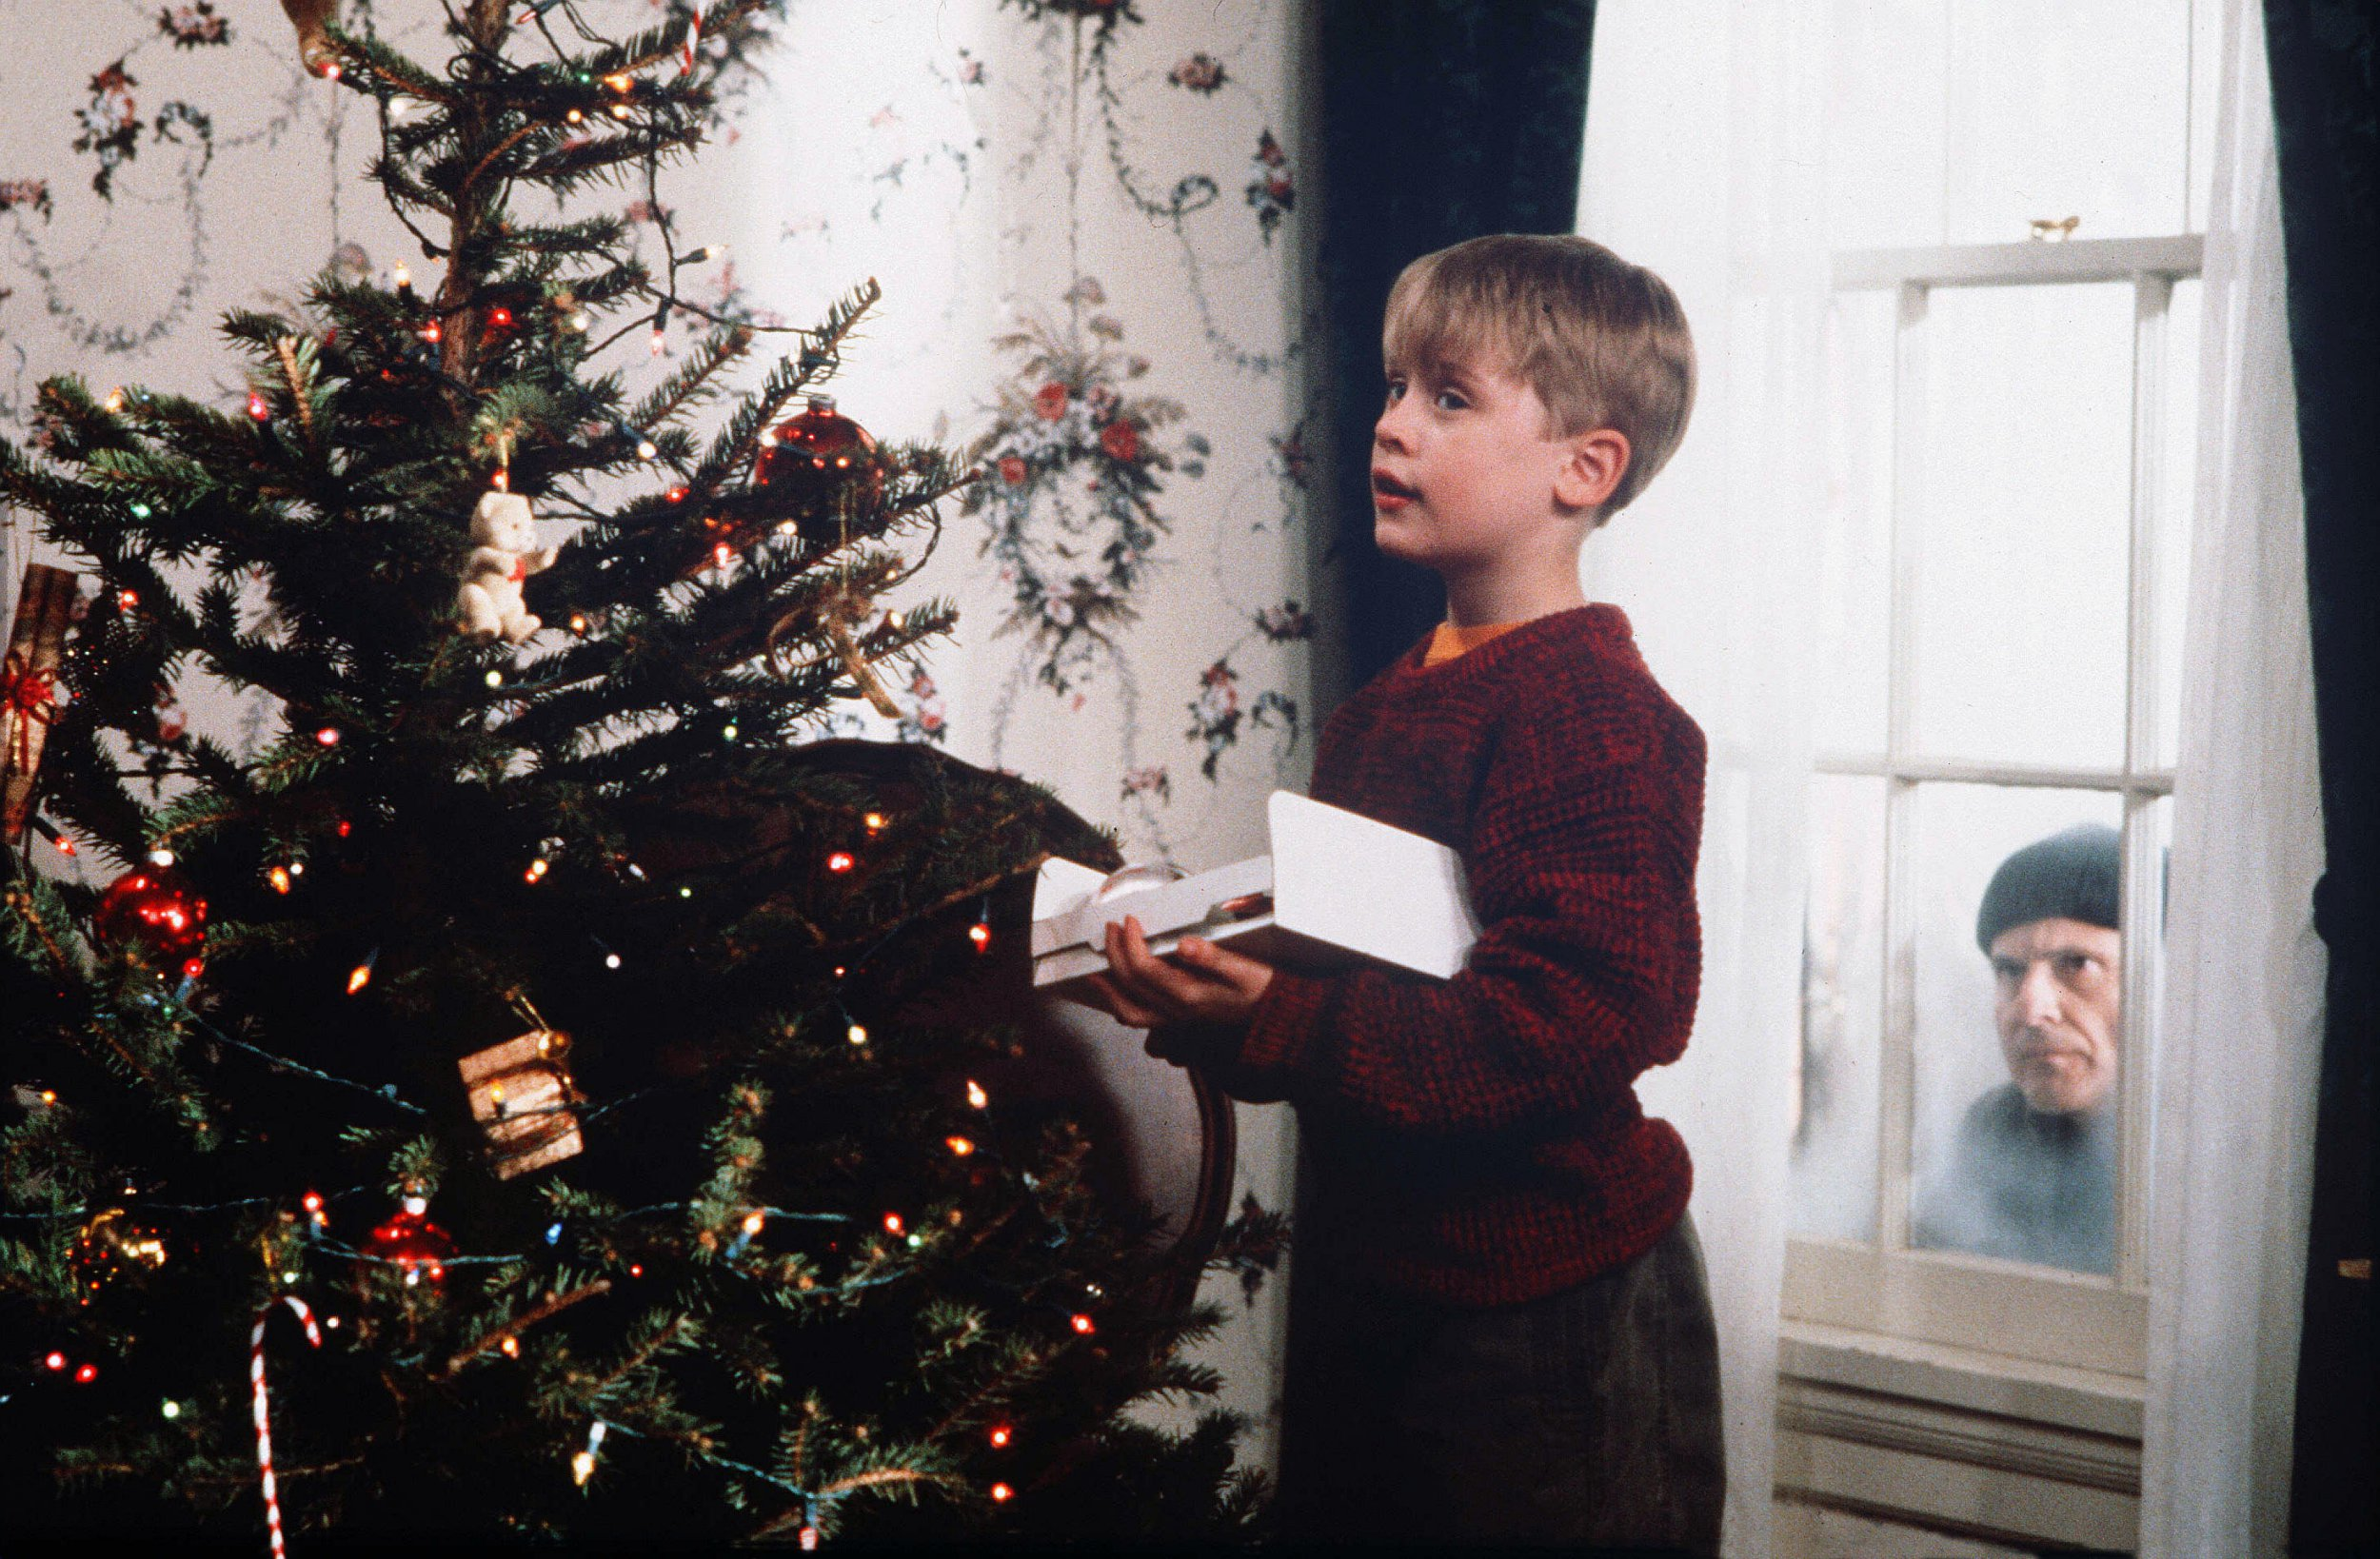 Nobody noticed the McCallisters went overboard with Christmas decorations in Home Alone and now they can't unsee